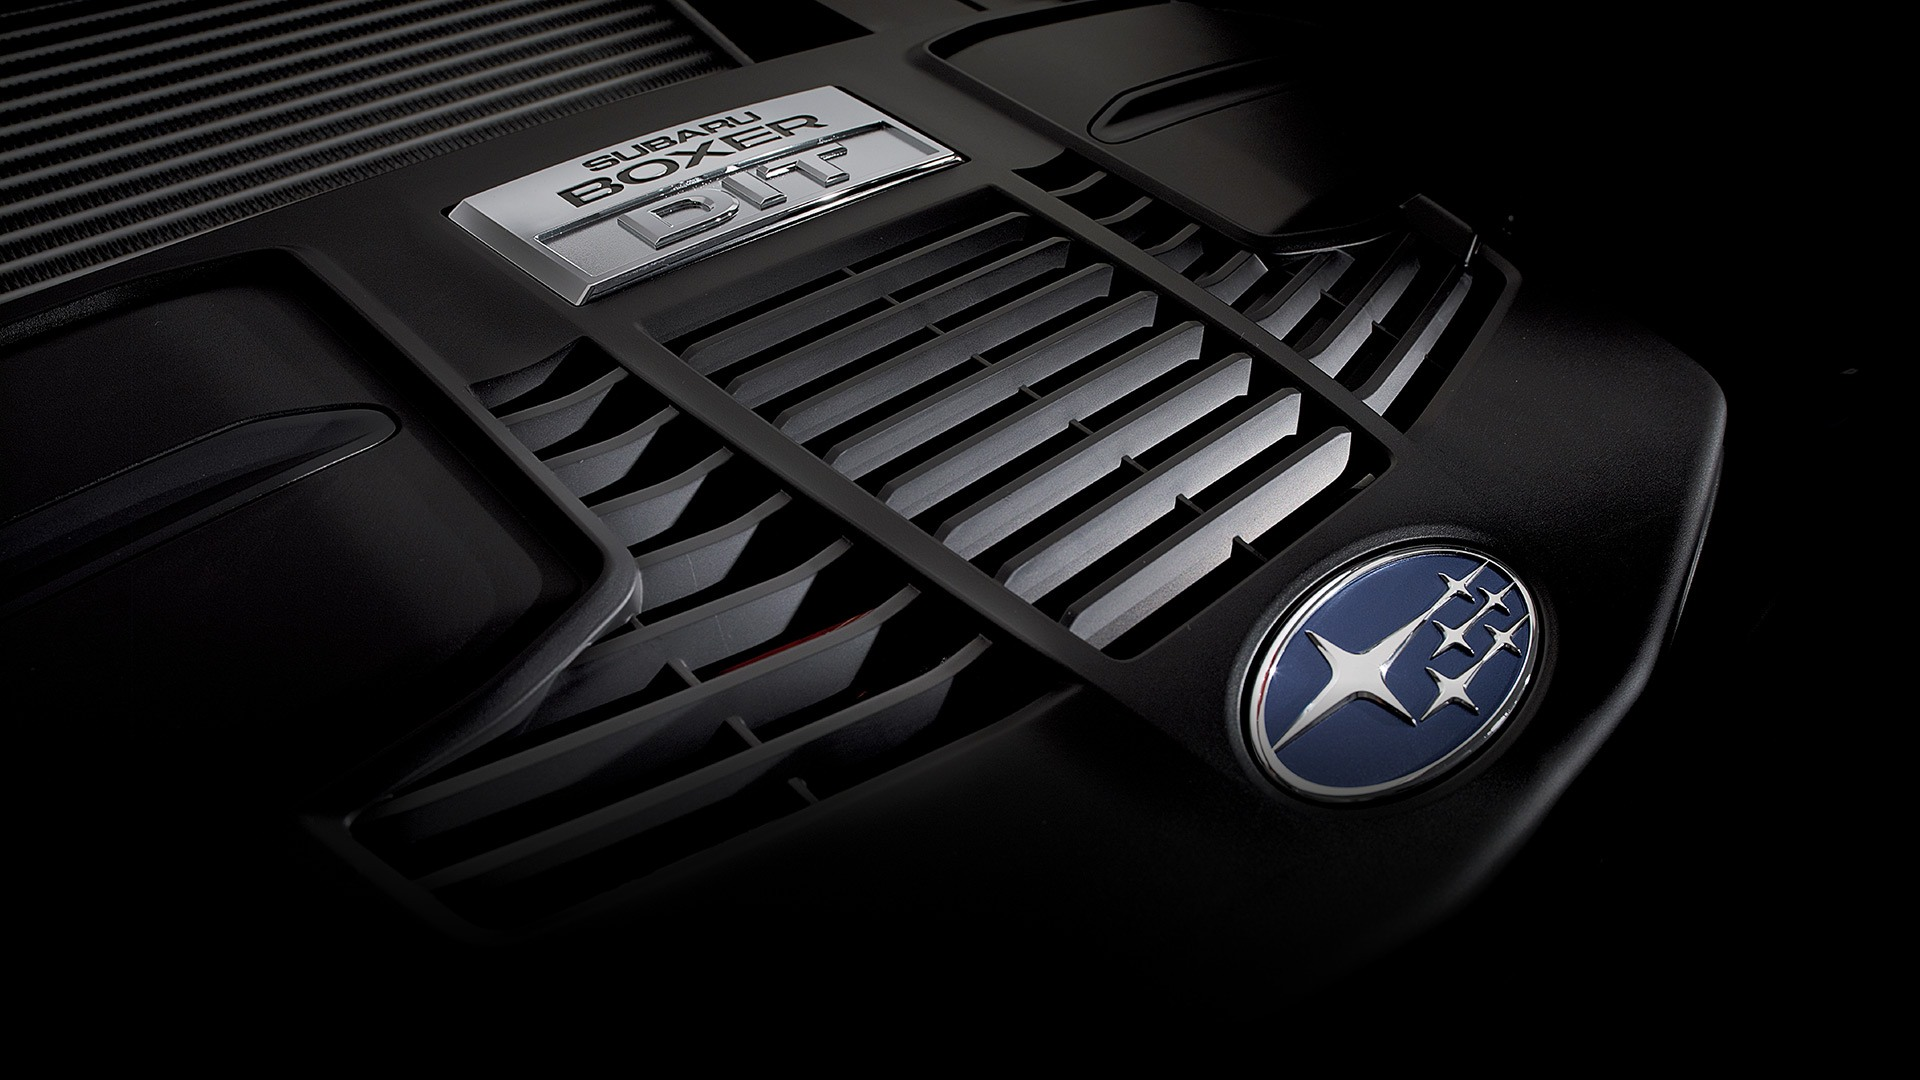 A rush of power when you crave it, the turbocharged SUBARU BOXER<sup>®</sup> engine on the Forester 2.0XT features 250 horsepower and 258 lb-ft of torque delivered across a wide range. There's also custom performance at the push of a button with the Subaru Intelligent Drive (SI-DRIVE) that enables three distinctive performance modes. Now fun to do is also fun to drive.